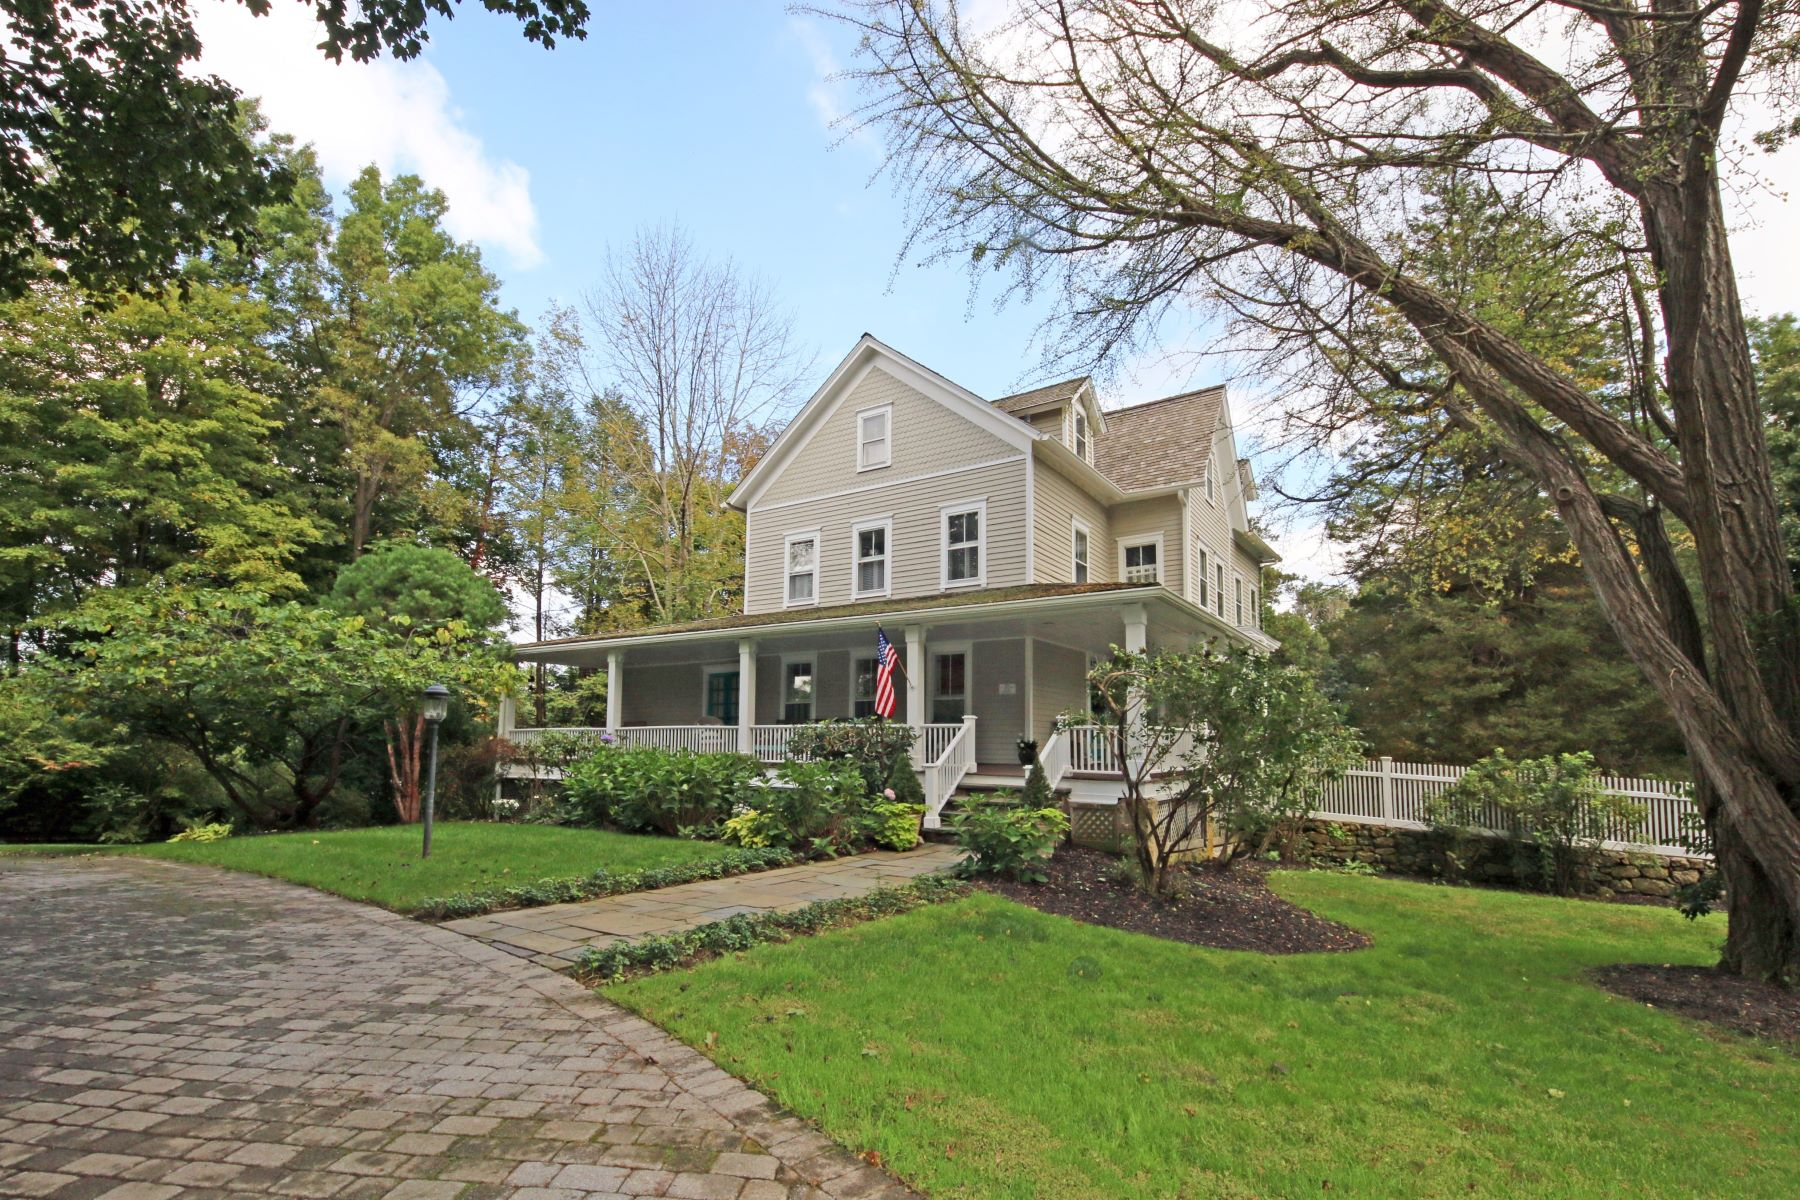 Single Family Home for Sale at ANTIQUE VICTORIAN 50 High Ridge Avenue Ridgefield, Connecticut 06877 United States